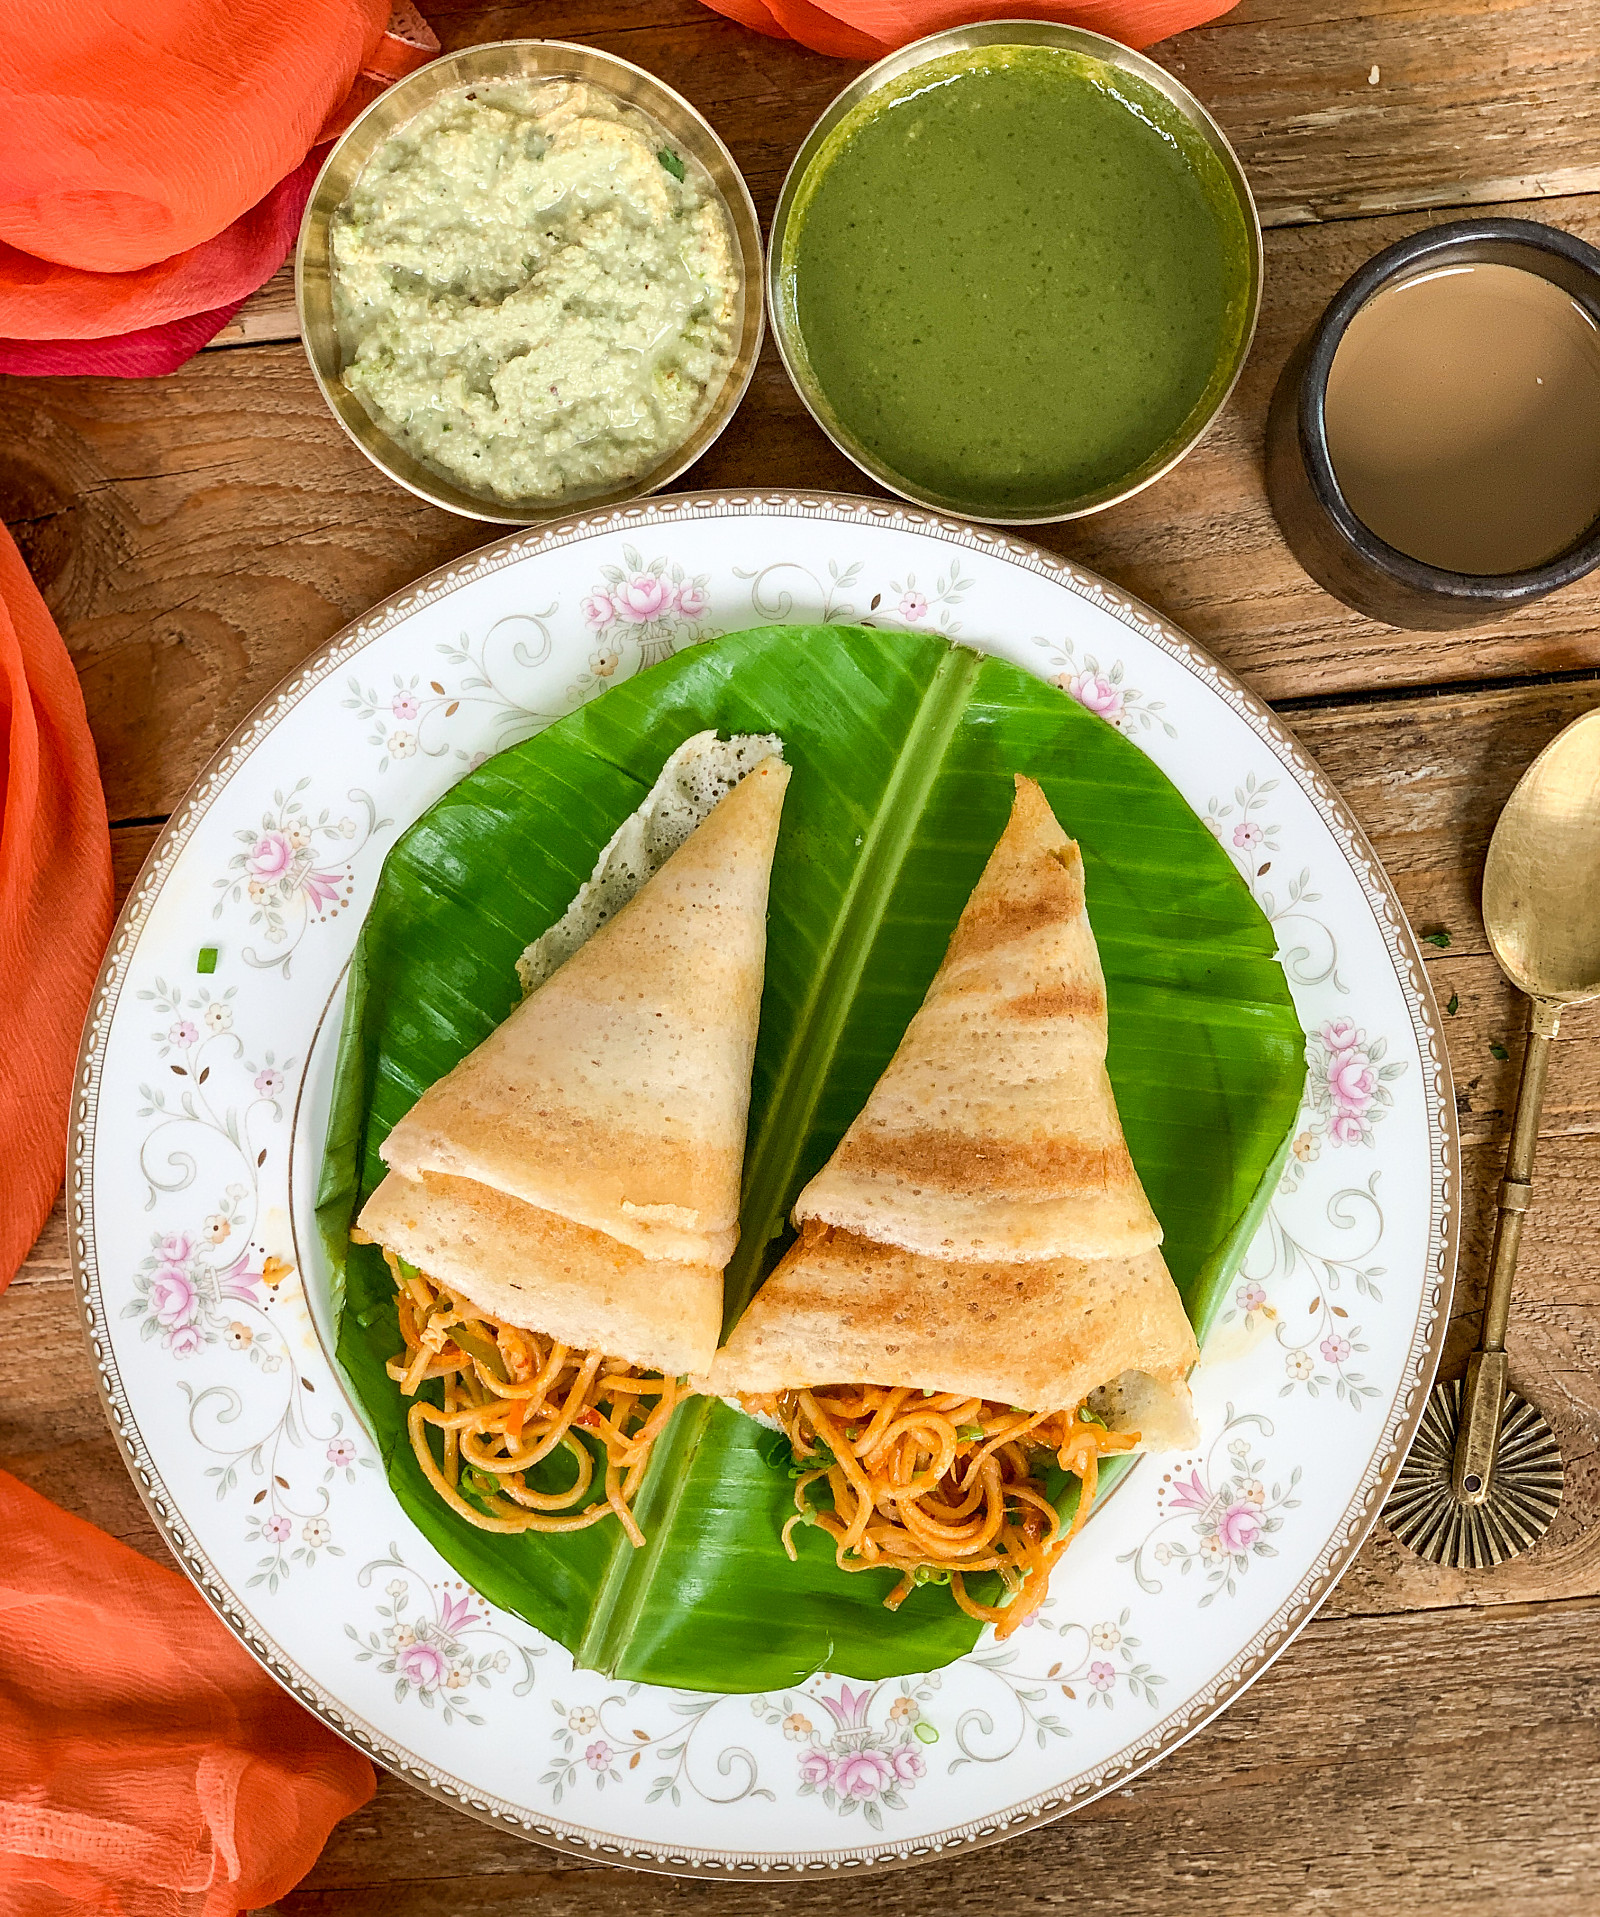 Schezwan Masala Dosa Recipe Using Classic Idli Dosa Batter